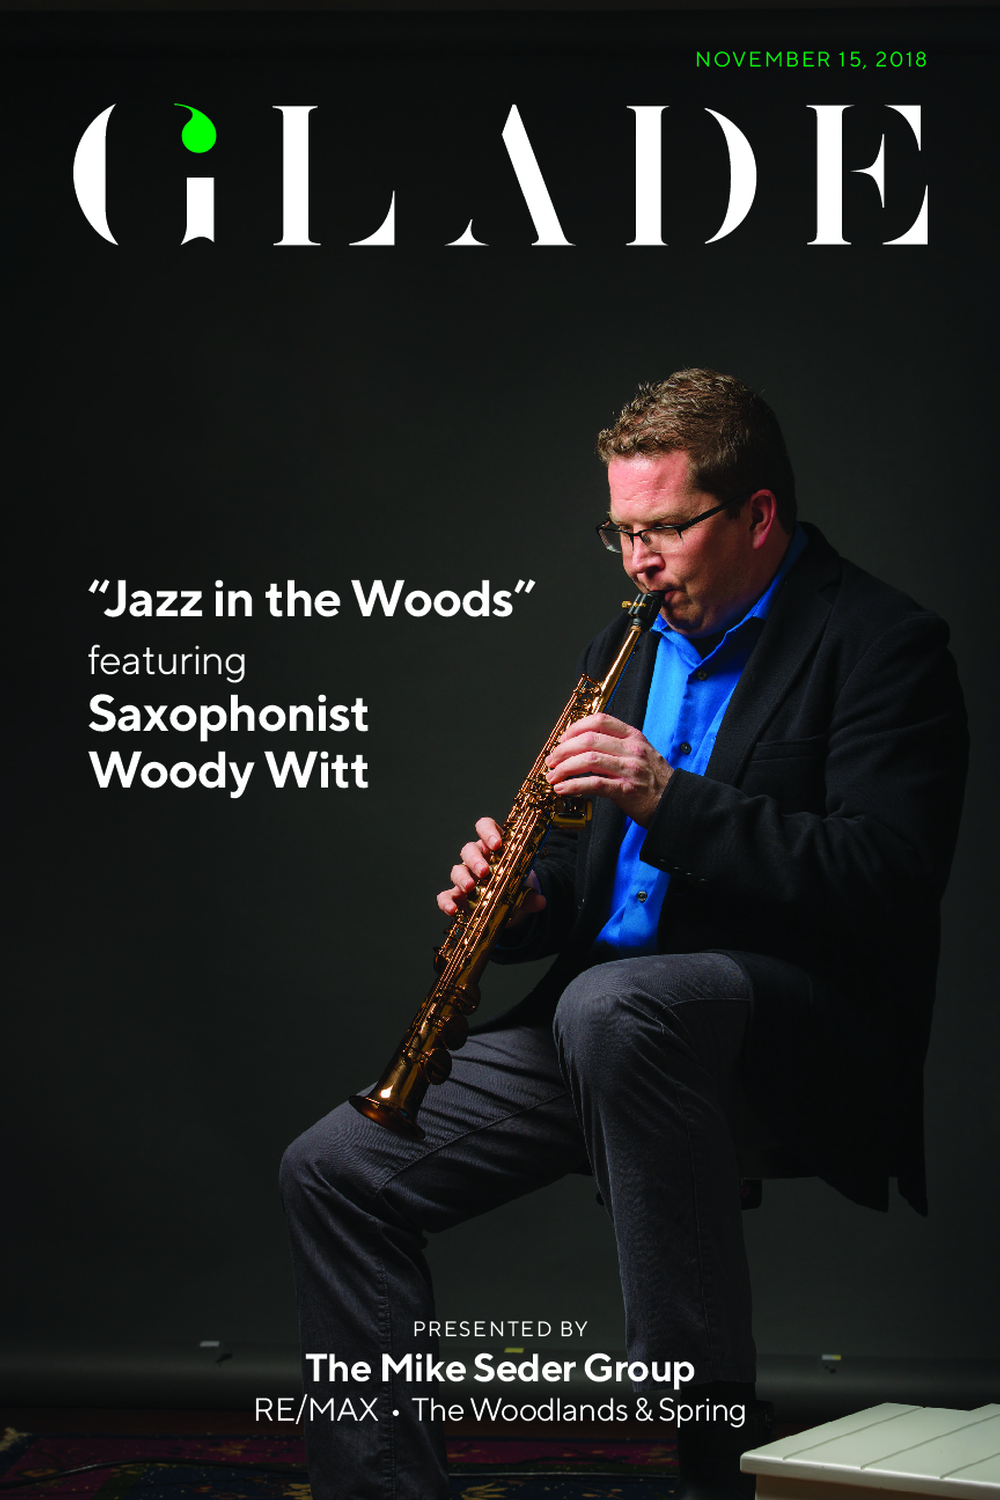 Jazz in the Woods Concert with Woody Witt